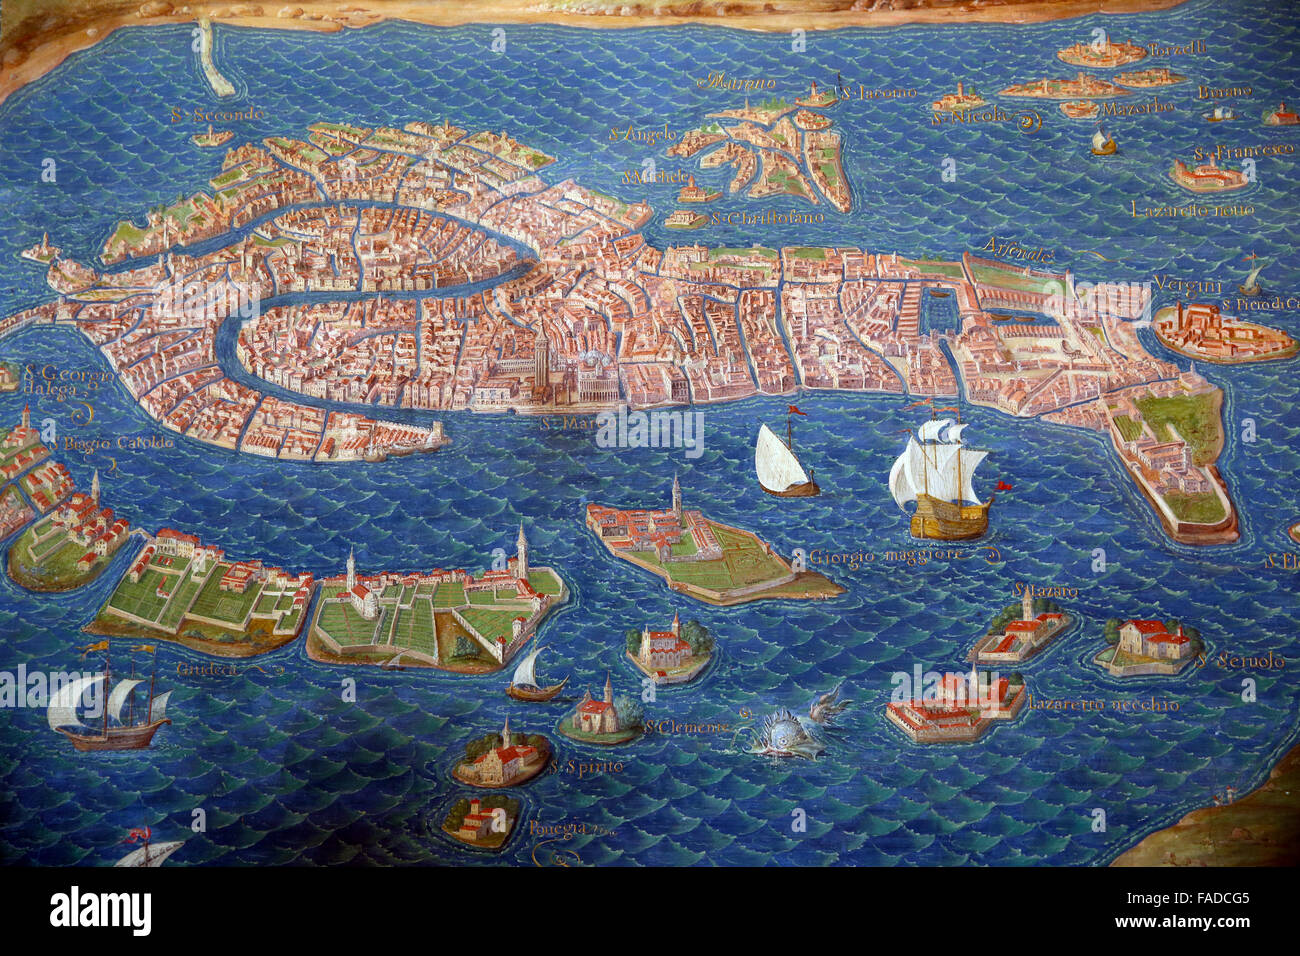 Map of Venice in the Gallery of Maps in the Vatican Museum. - Stock Image